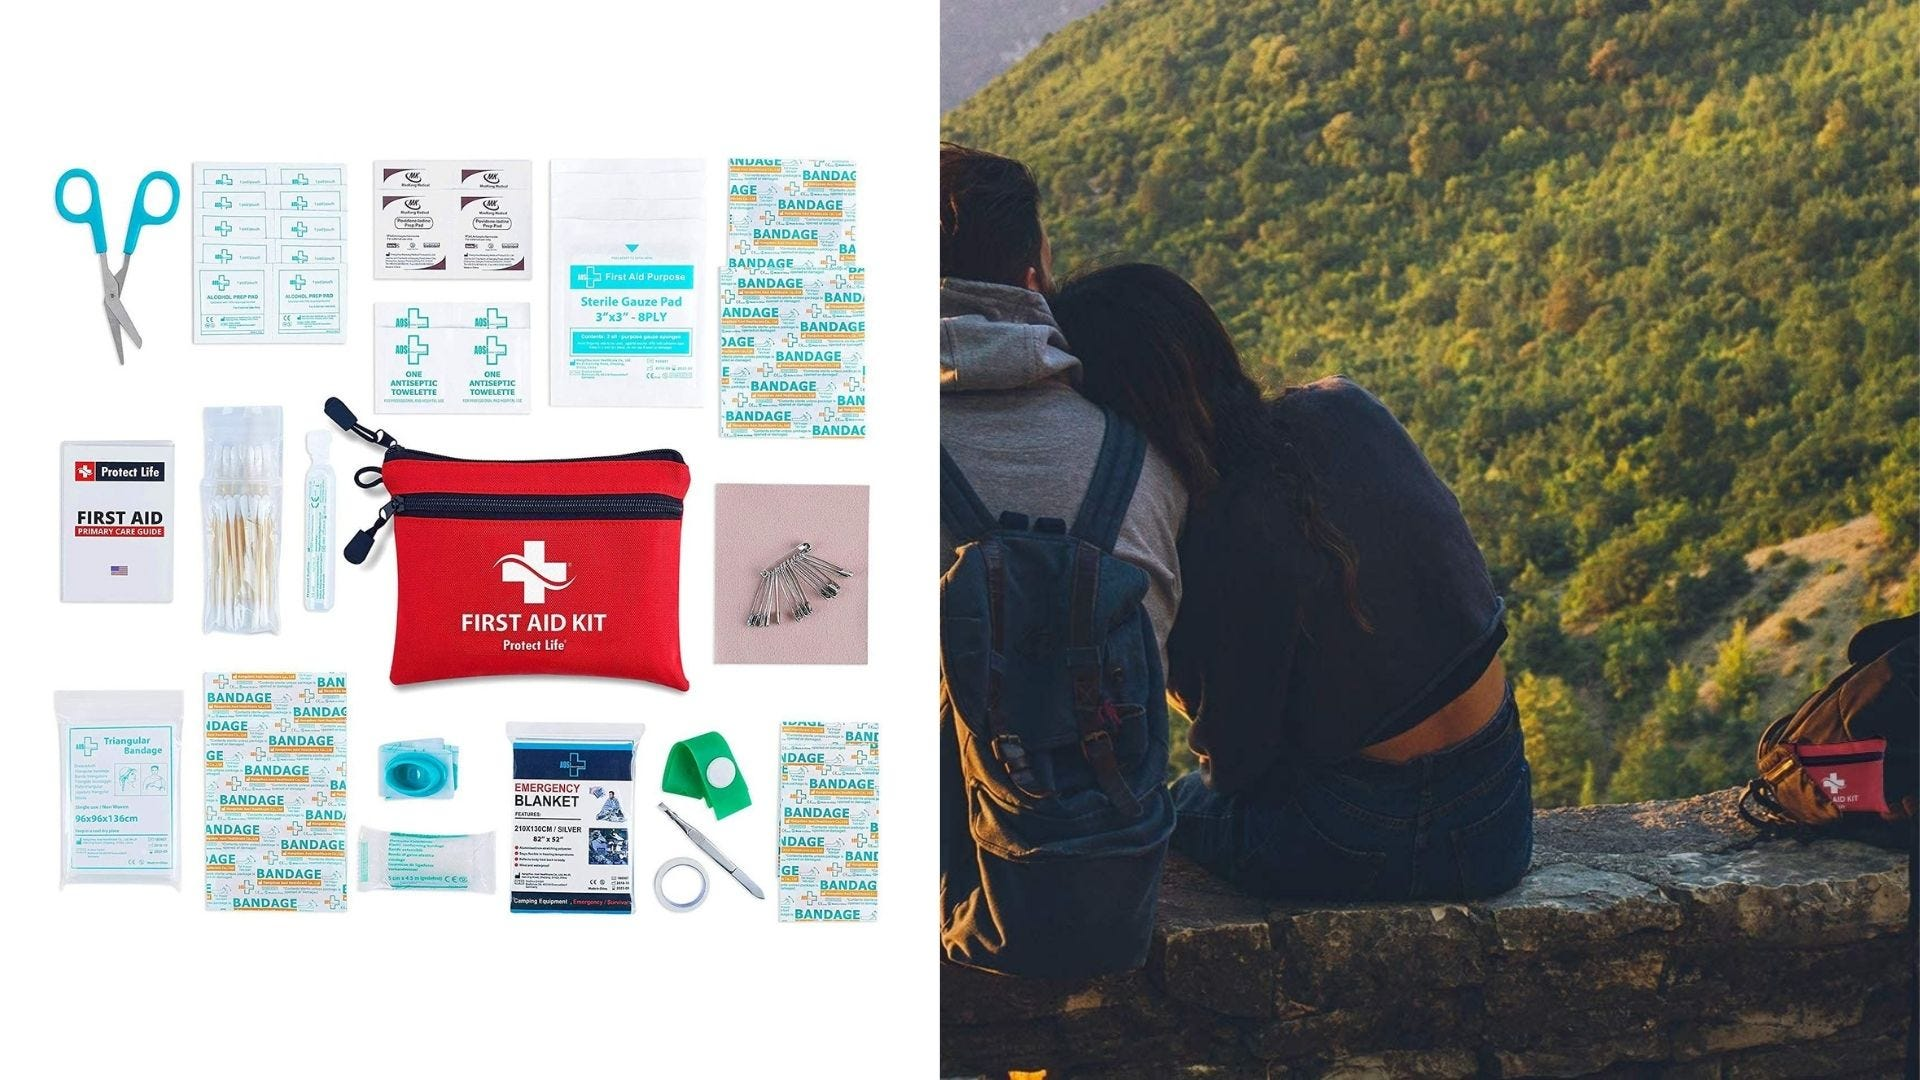 A first aid kit with all the content laid out and two people overlook a scenic overview